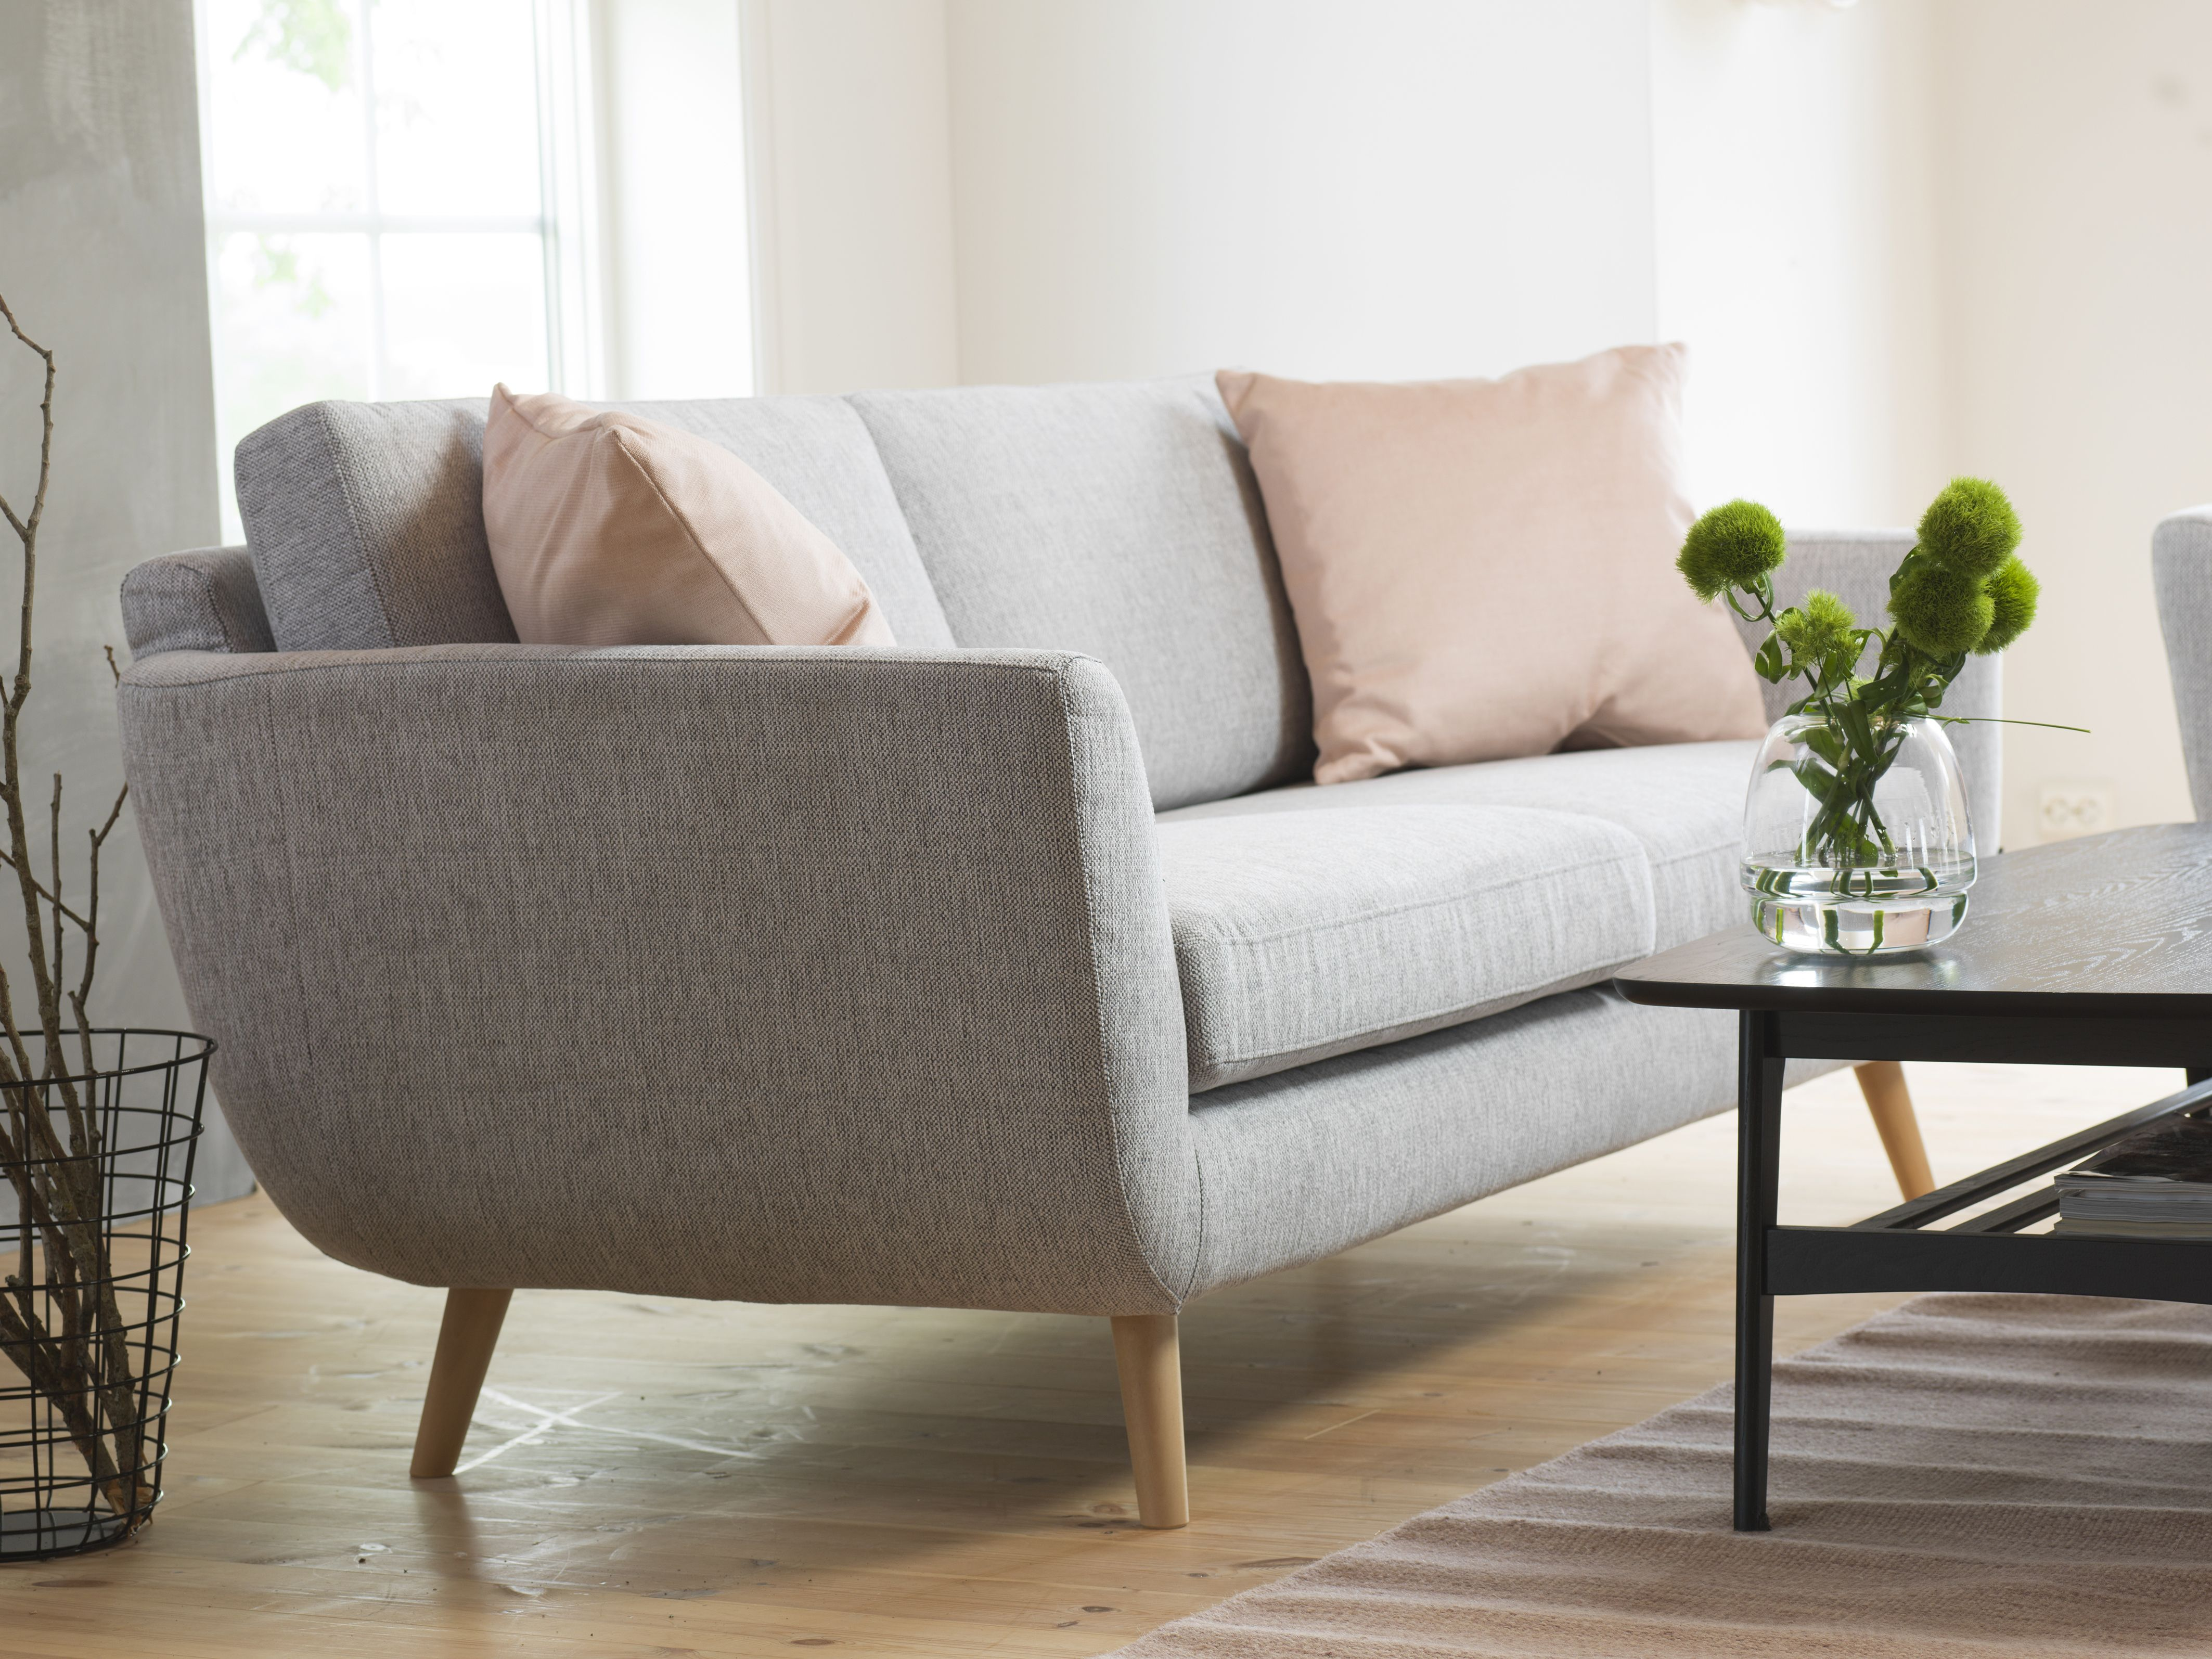 Skeidar Sofa L Shape Set Designs India Sun Fra Lookbook Stue Pinterest